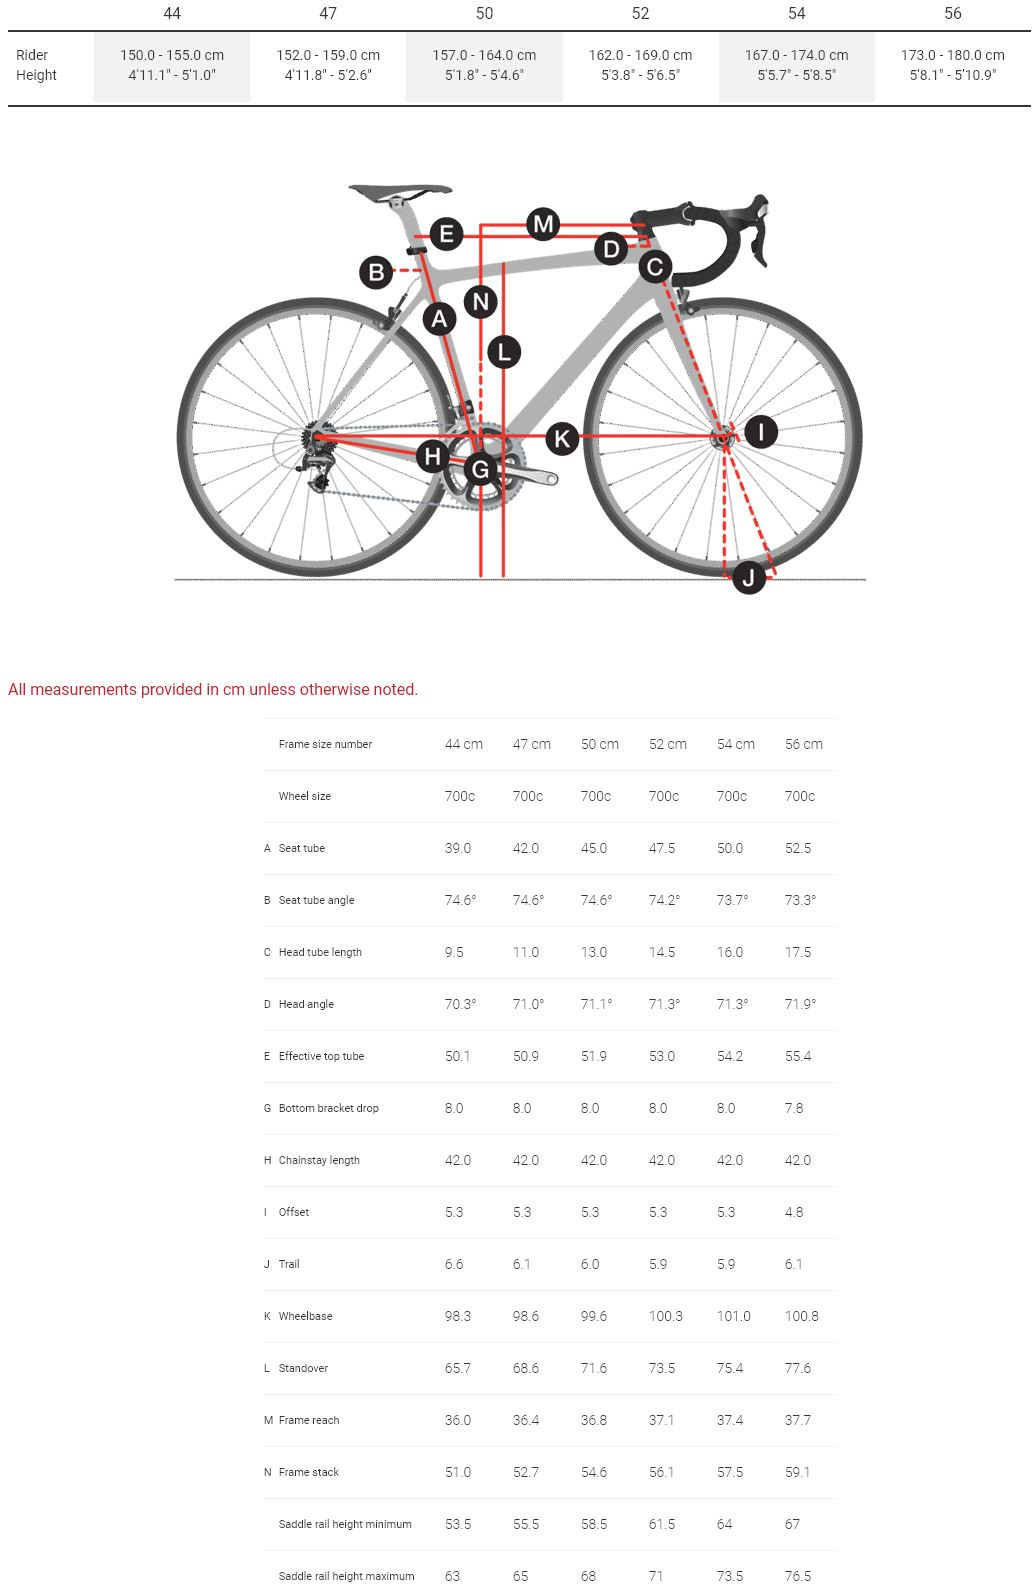 Trek Domane SLR Women's Geometry Chart